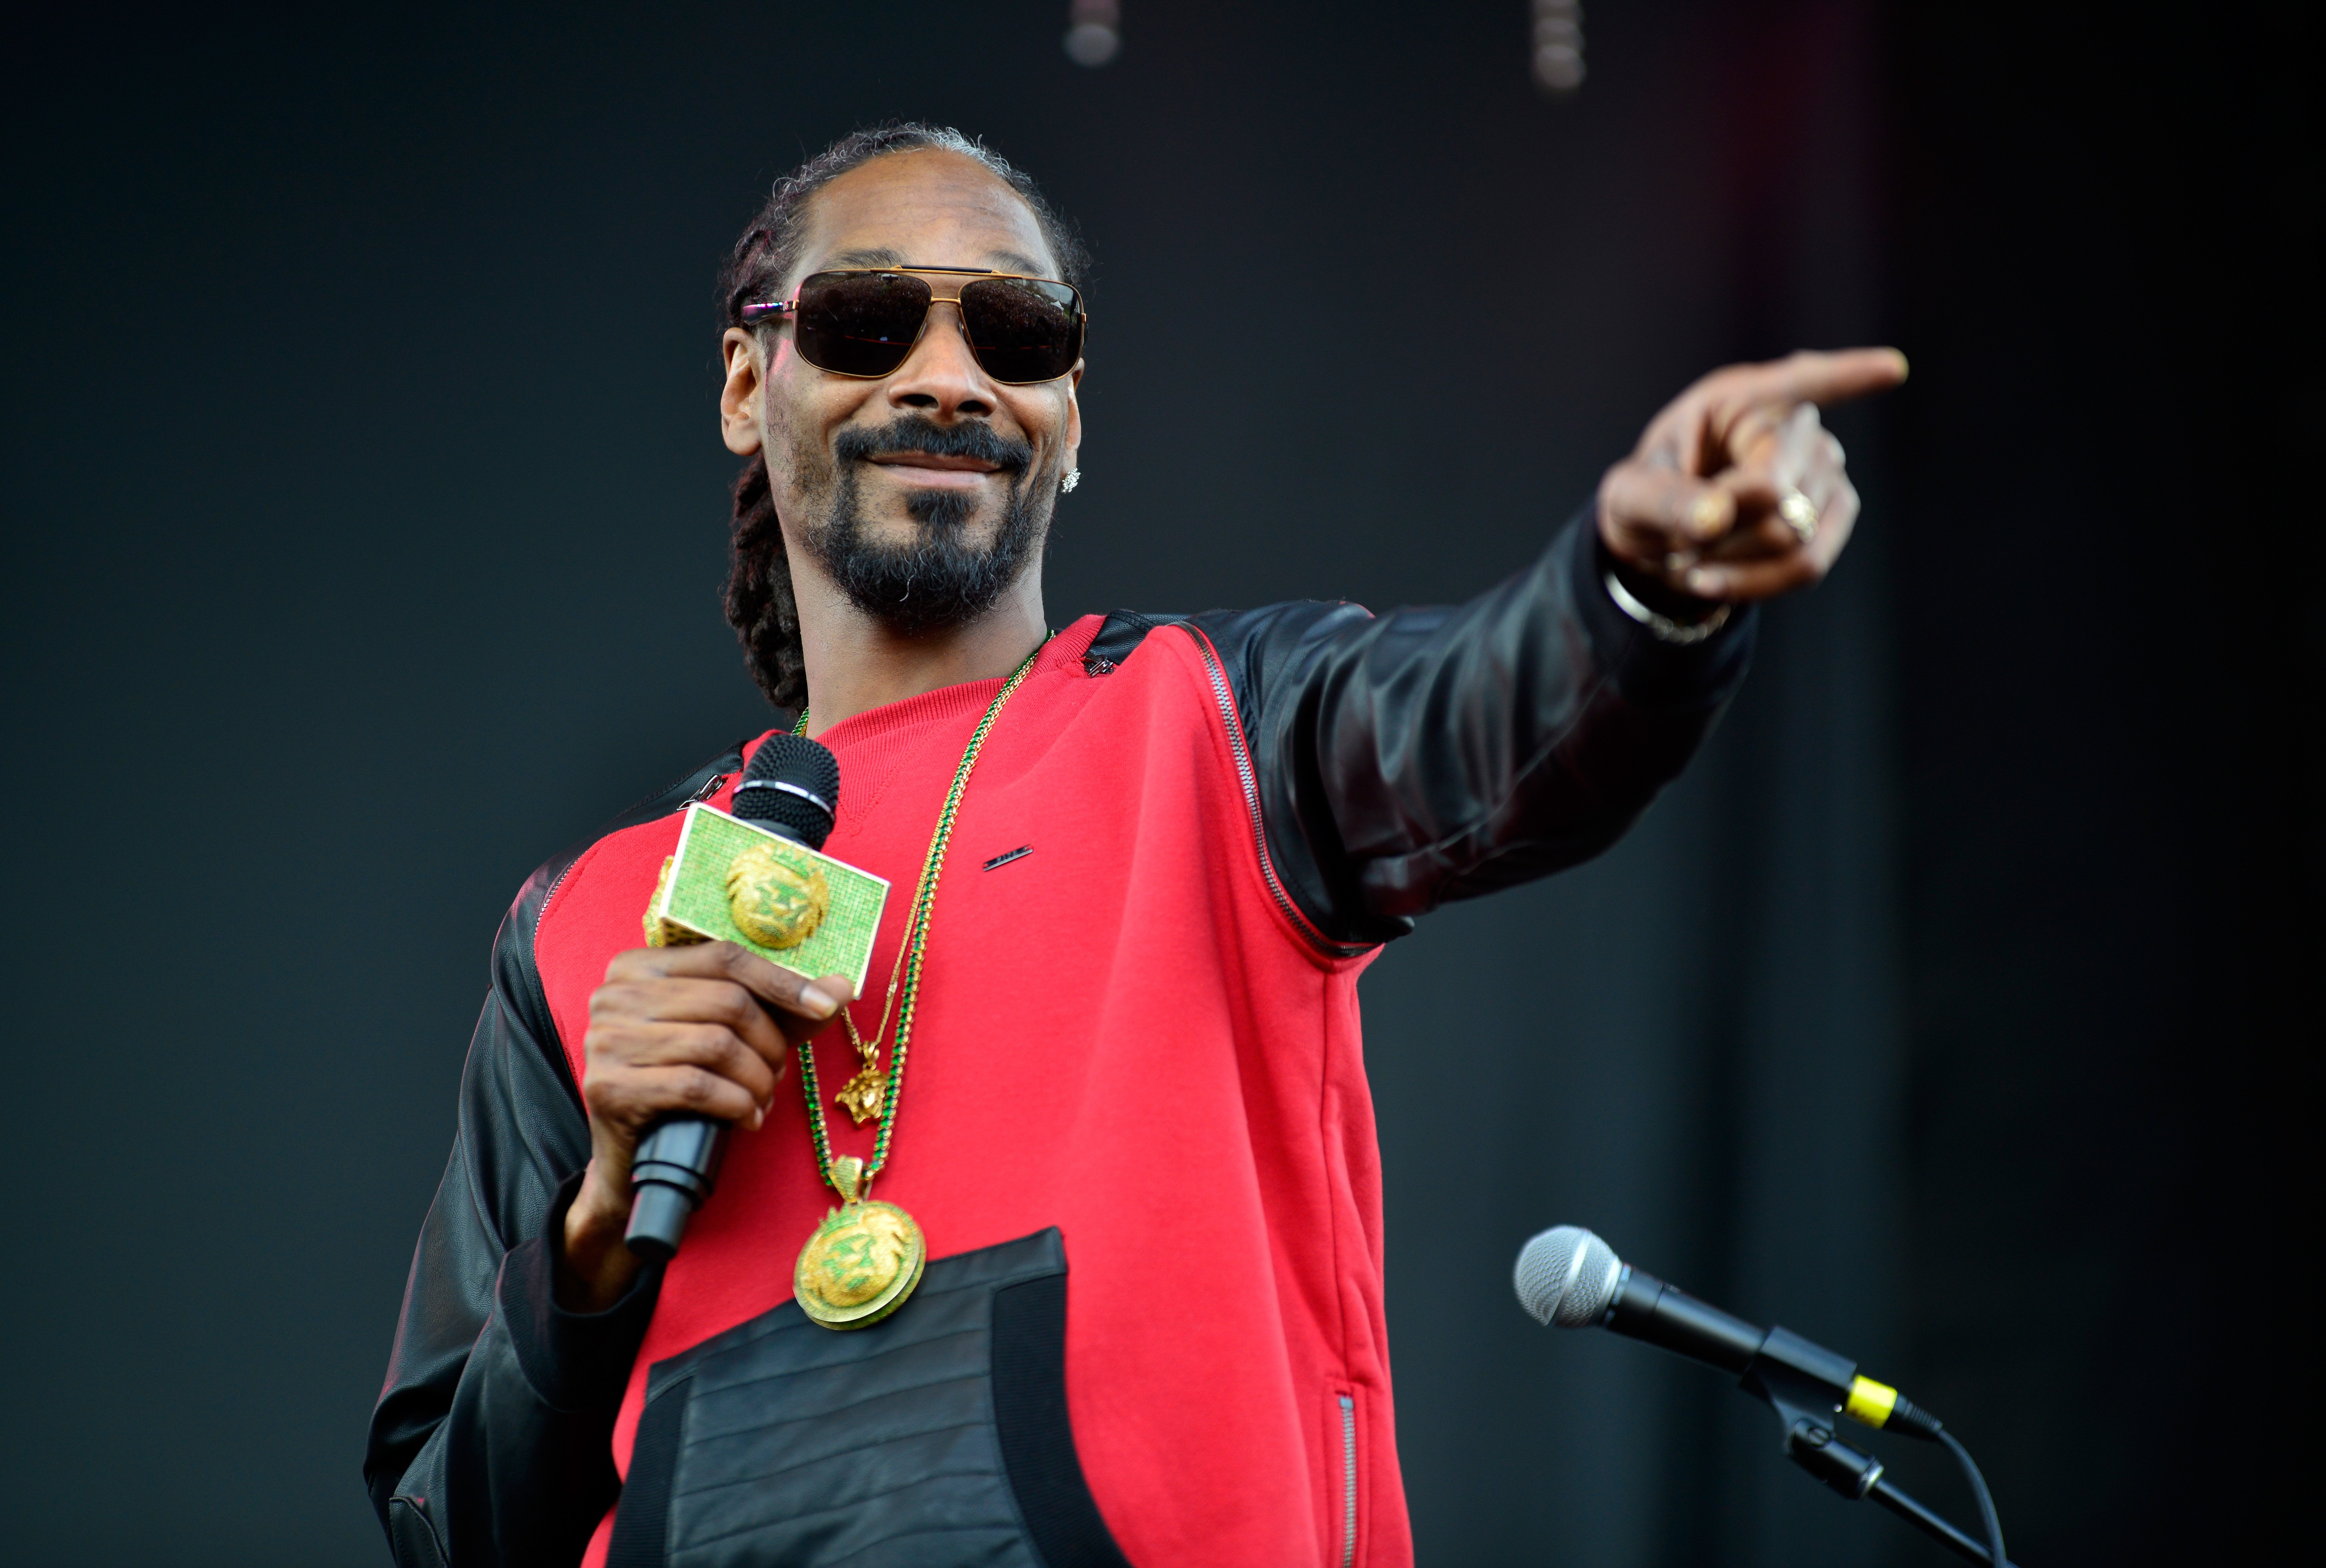 Snoop Dogg at the SXSW Music, Film + Interactive Festival on March 15, 2014 in Texas | Photo: Getty Images